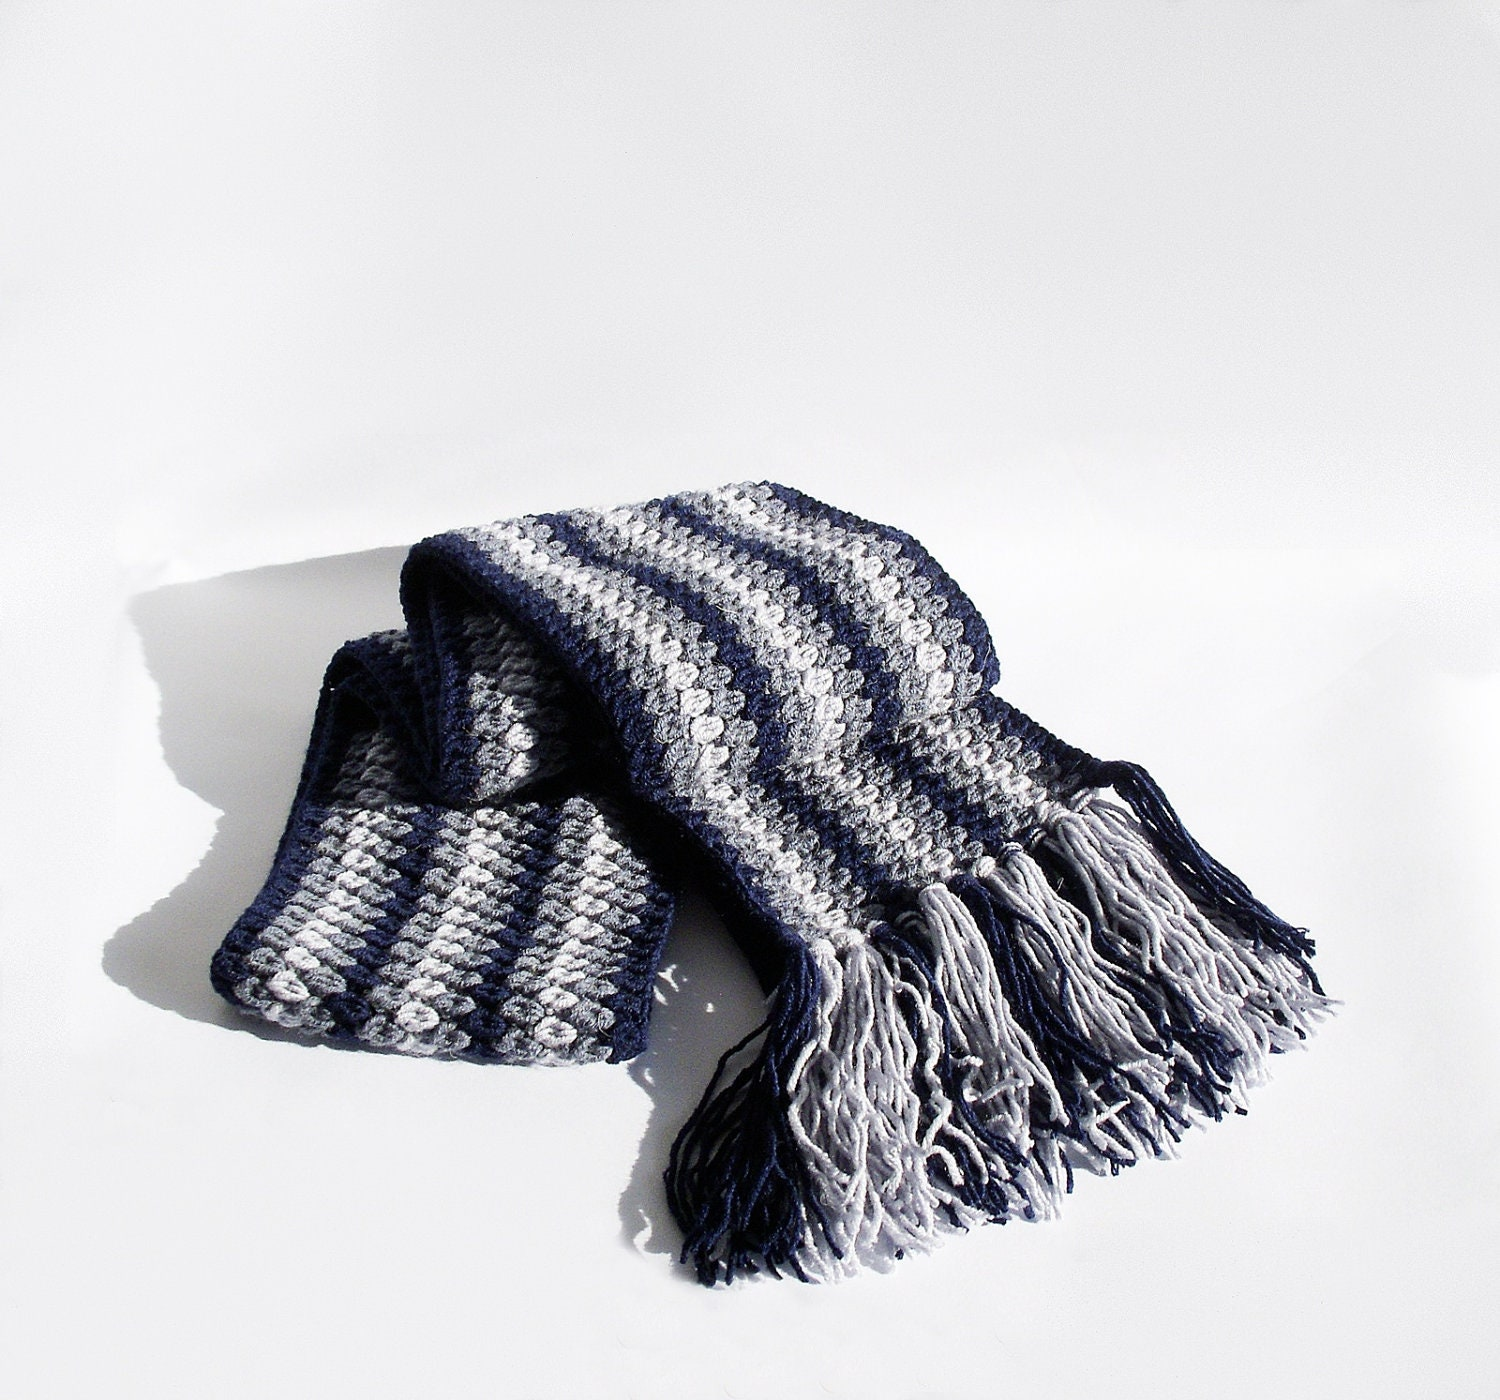 Men's scarf crocheted  - extra long  in dark blue, light blue and gray-blue, unisex scarf